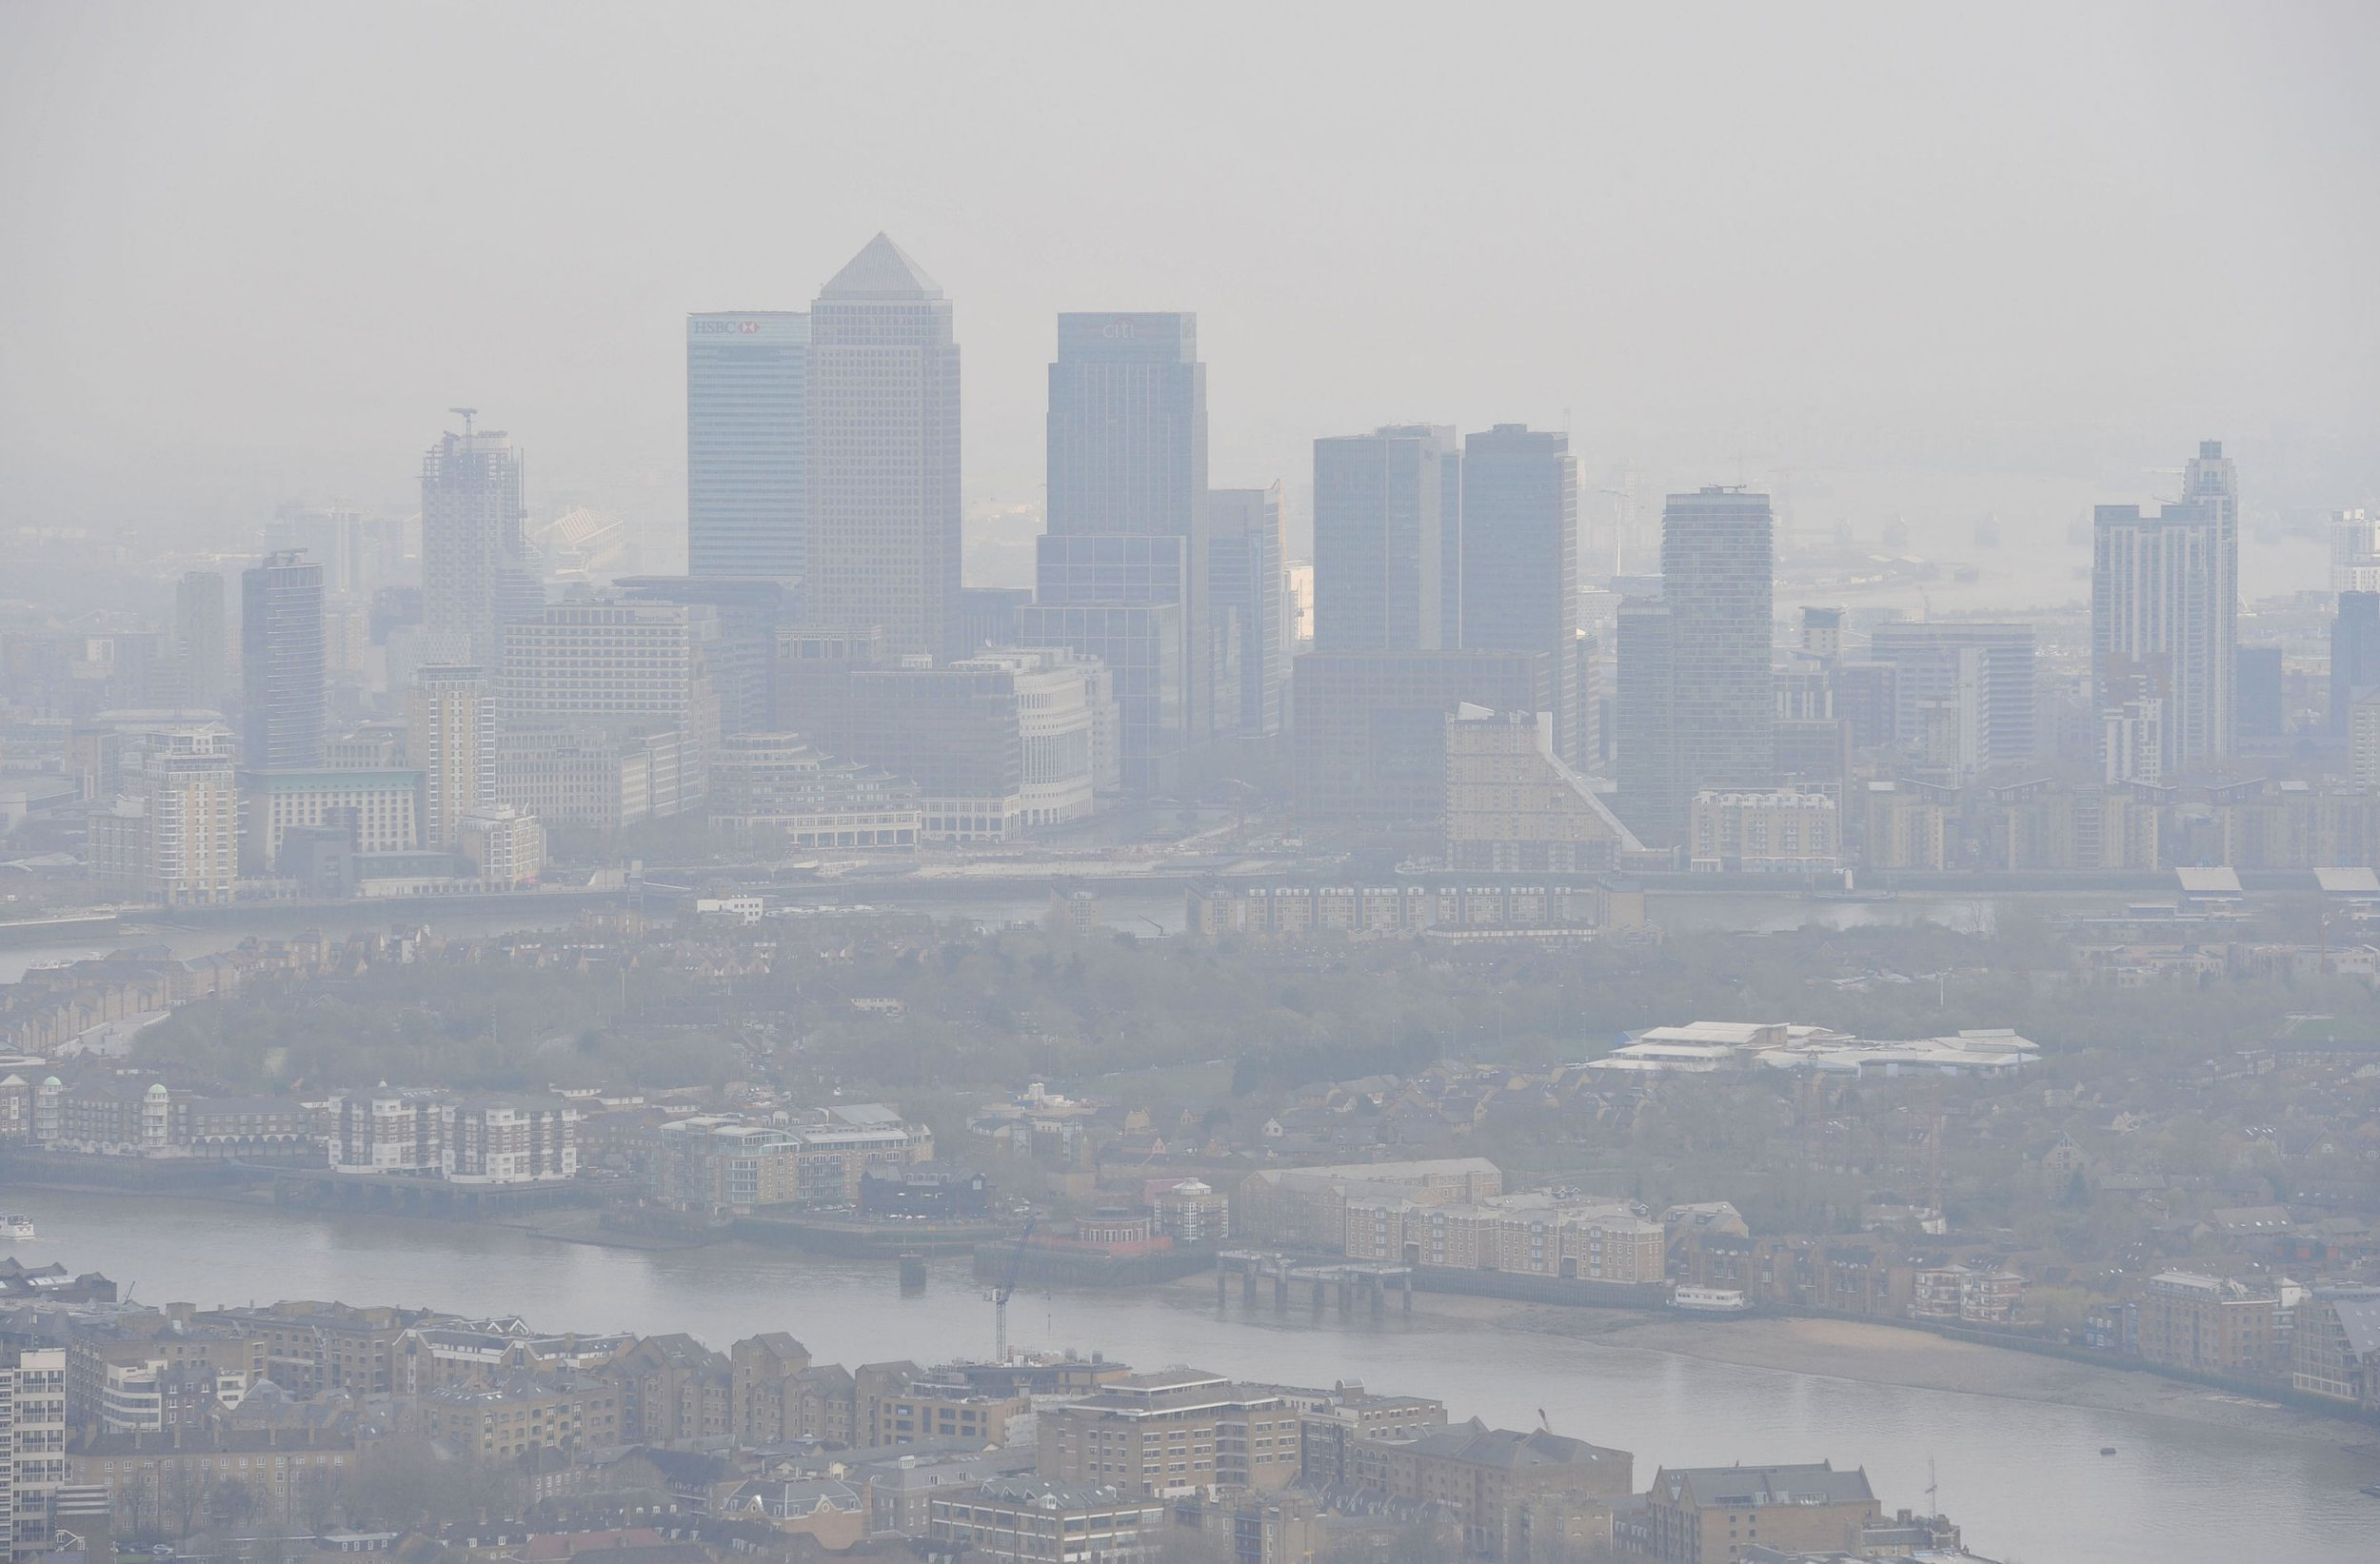 """Embargoed to 2230 Tuesday February 05 File photo dated 10/04/15 of air pollution over London. Children should be put at the heart of Government plans to tackle air pollution to help prevent damage to their health, a leading charity has said. PRESS ASSOCIATION Photo. Issue date: Tuesday February 5, 2019. Current national action """"lacks the ambition and direction needed"""" to protect young people from immediate harm as improvements to air quality are sought, a new report by Unicef UK warns. See PA story HEALTH Pollution. Photo credit should read: Nick Ansell/PA Wire"""